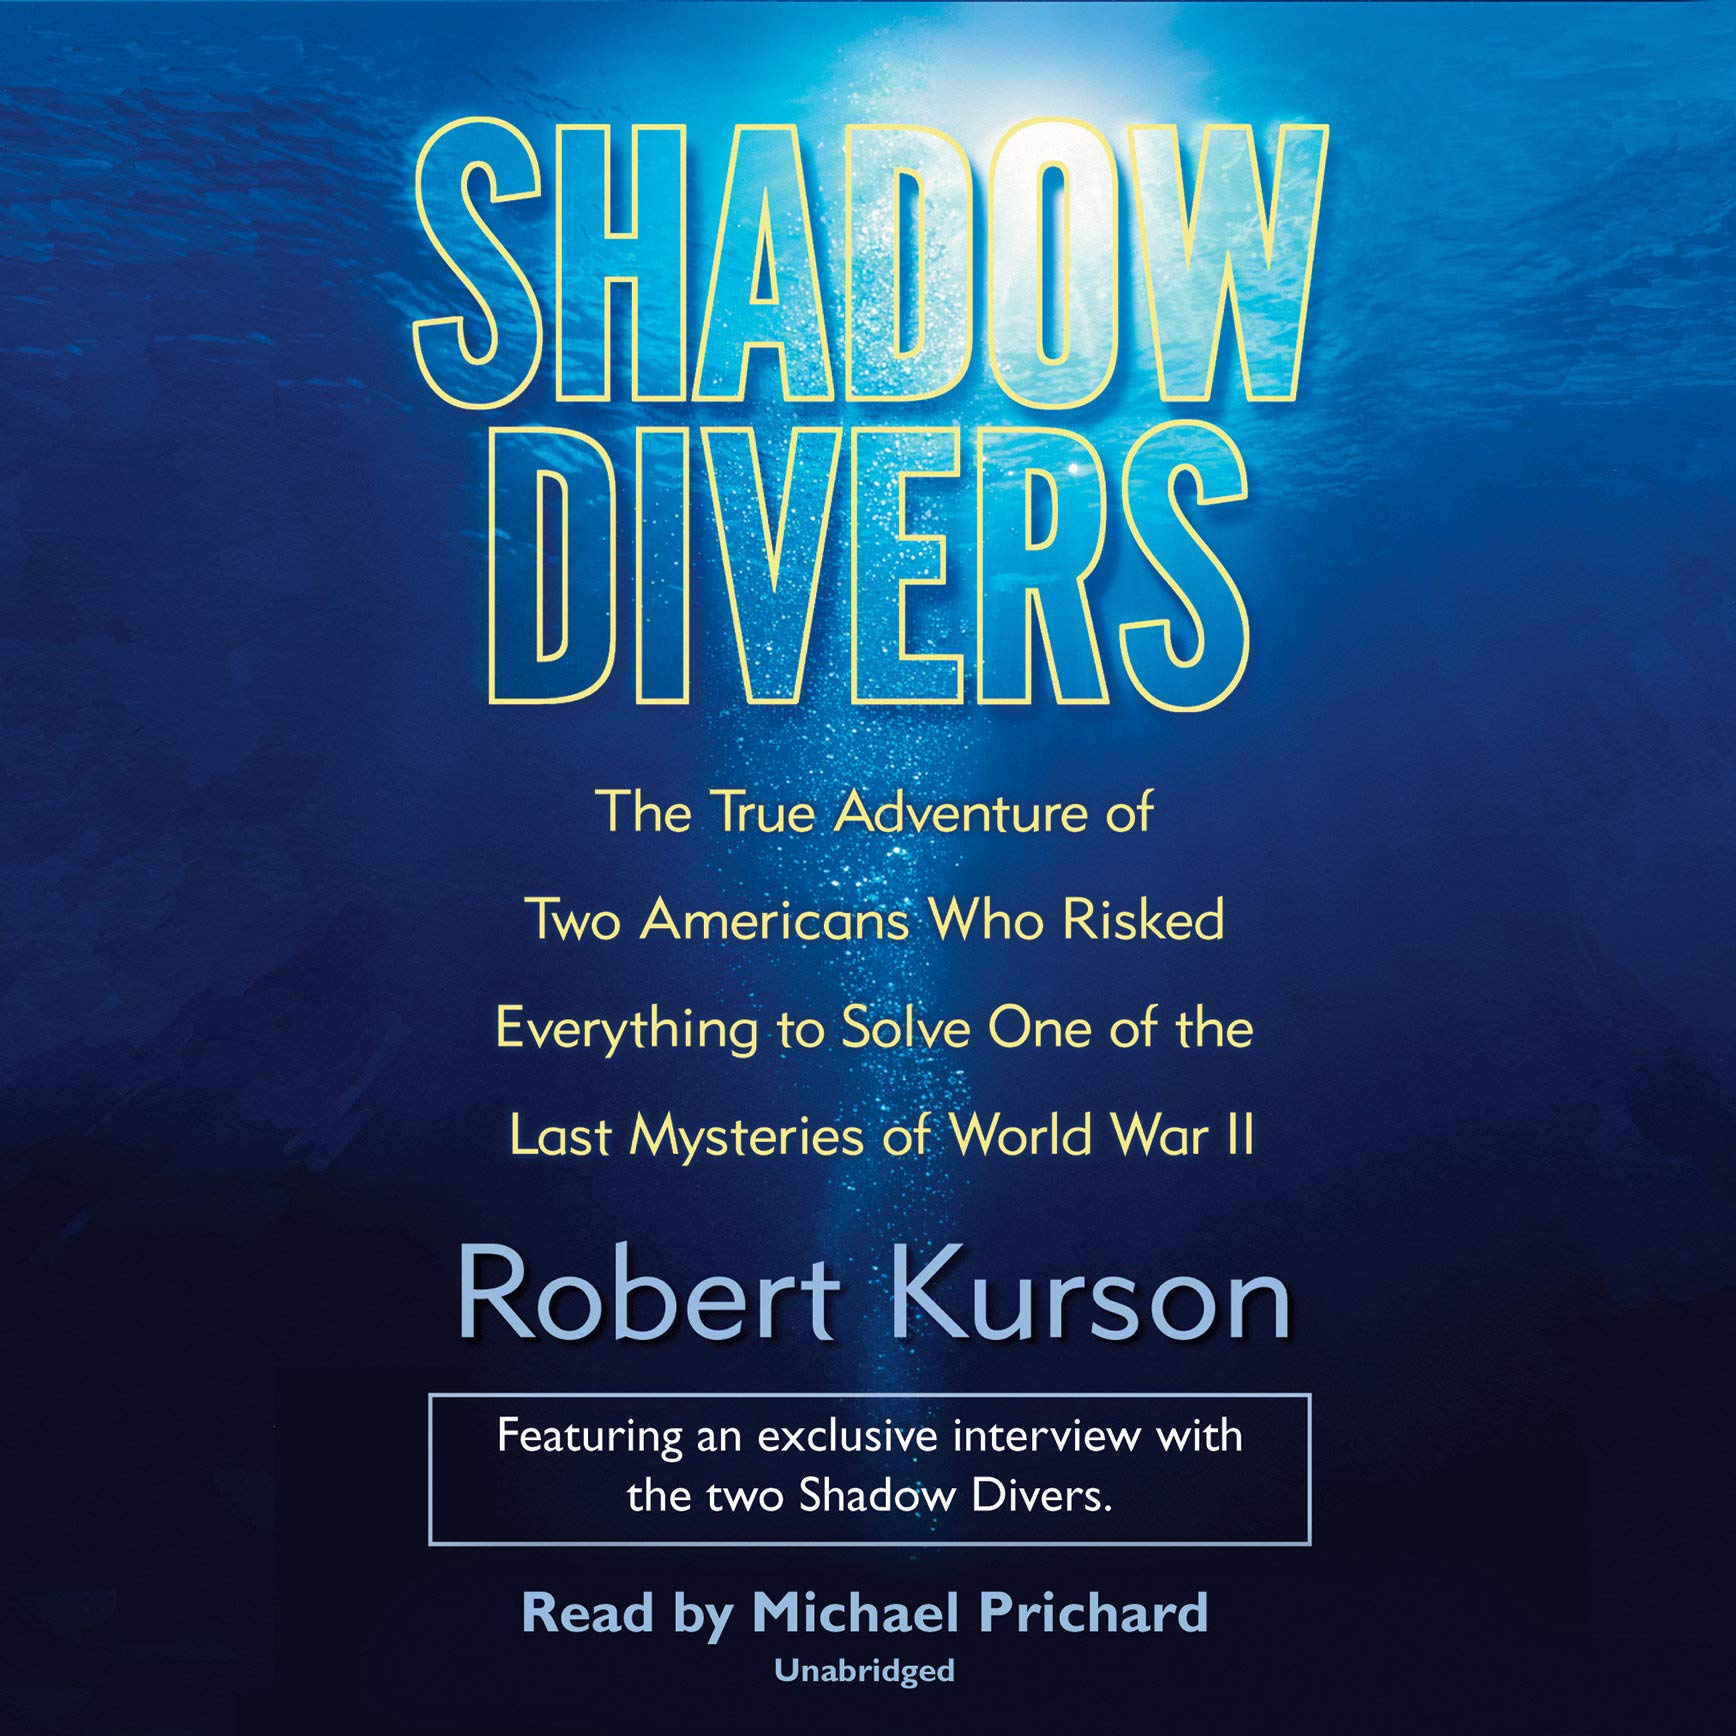 Shadow Divers: The True Adventure of Two Americans Who Risked Everything to Solve One of the Last Mysteries of World War II by Books on Tape